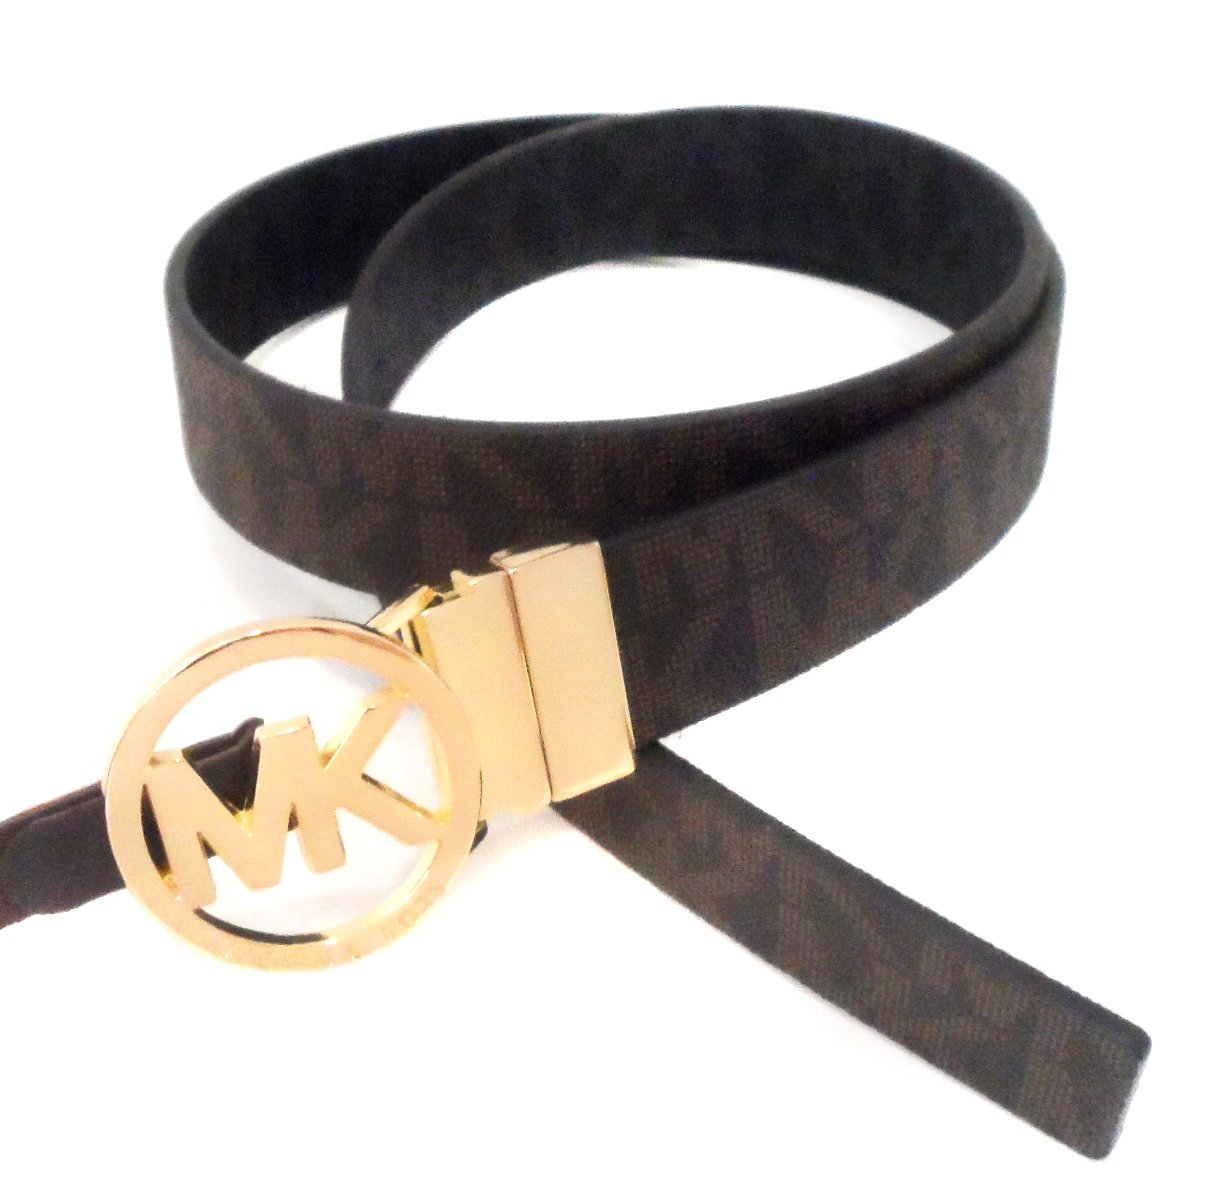 MICHAEL Michael Kors Reversible Belt with Gold-Tone MK Logo, Brown and Black, Large